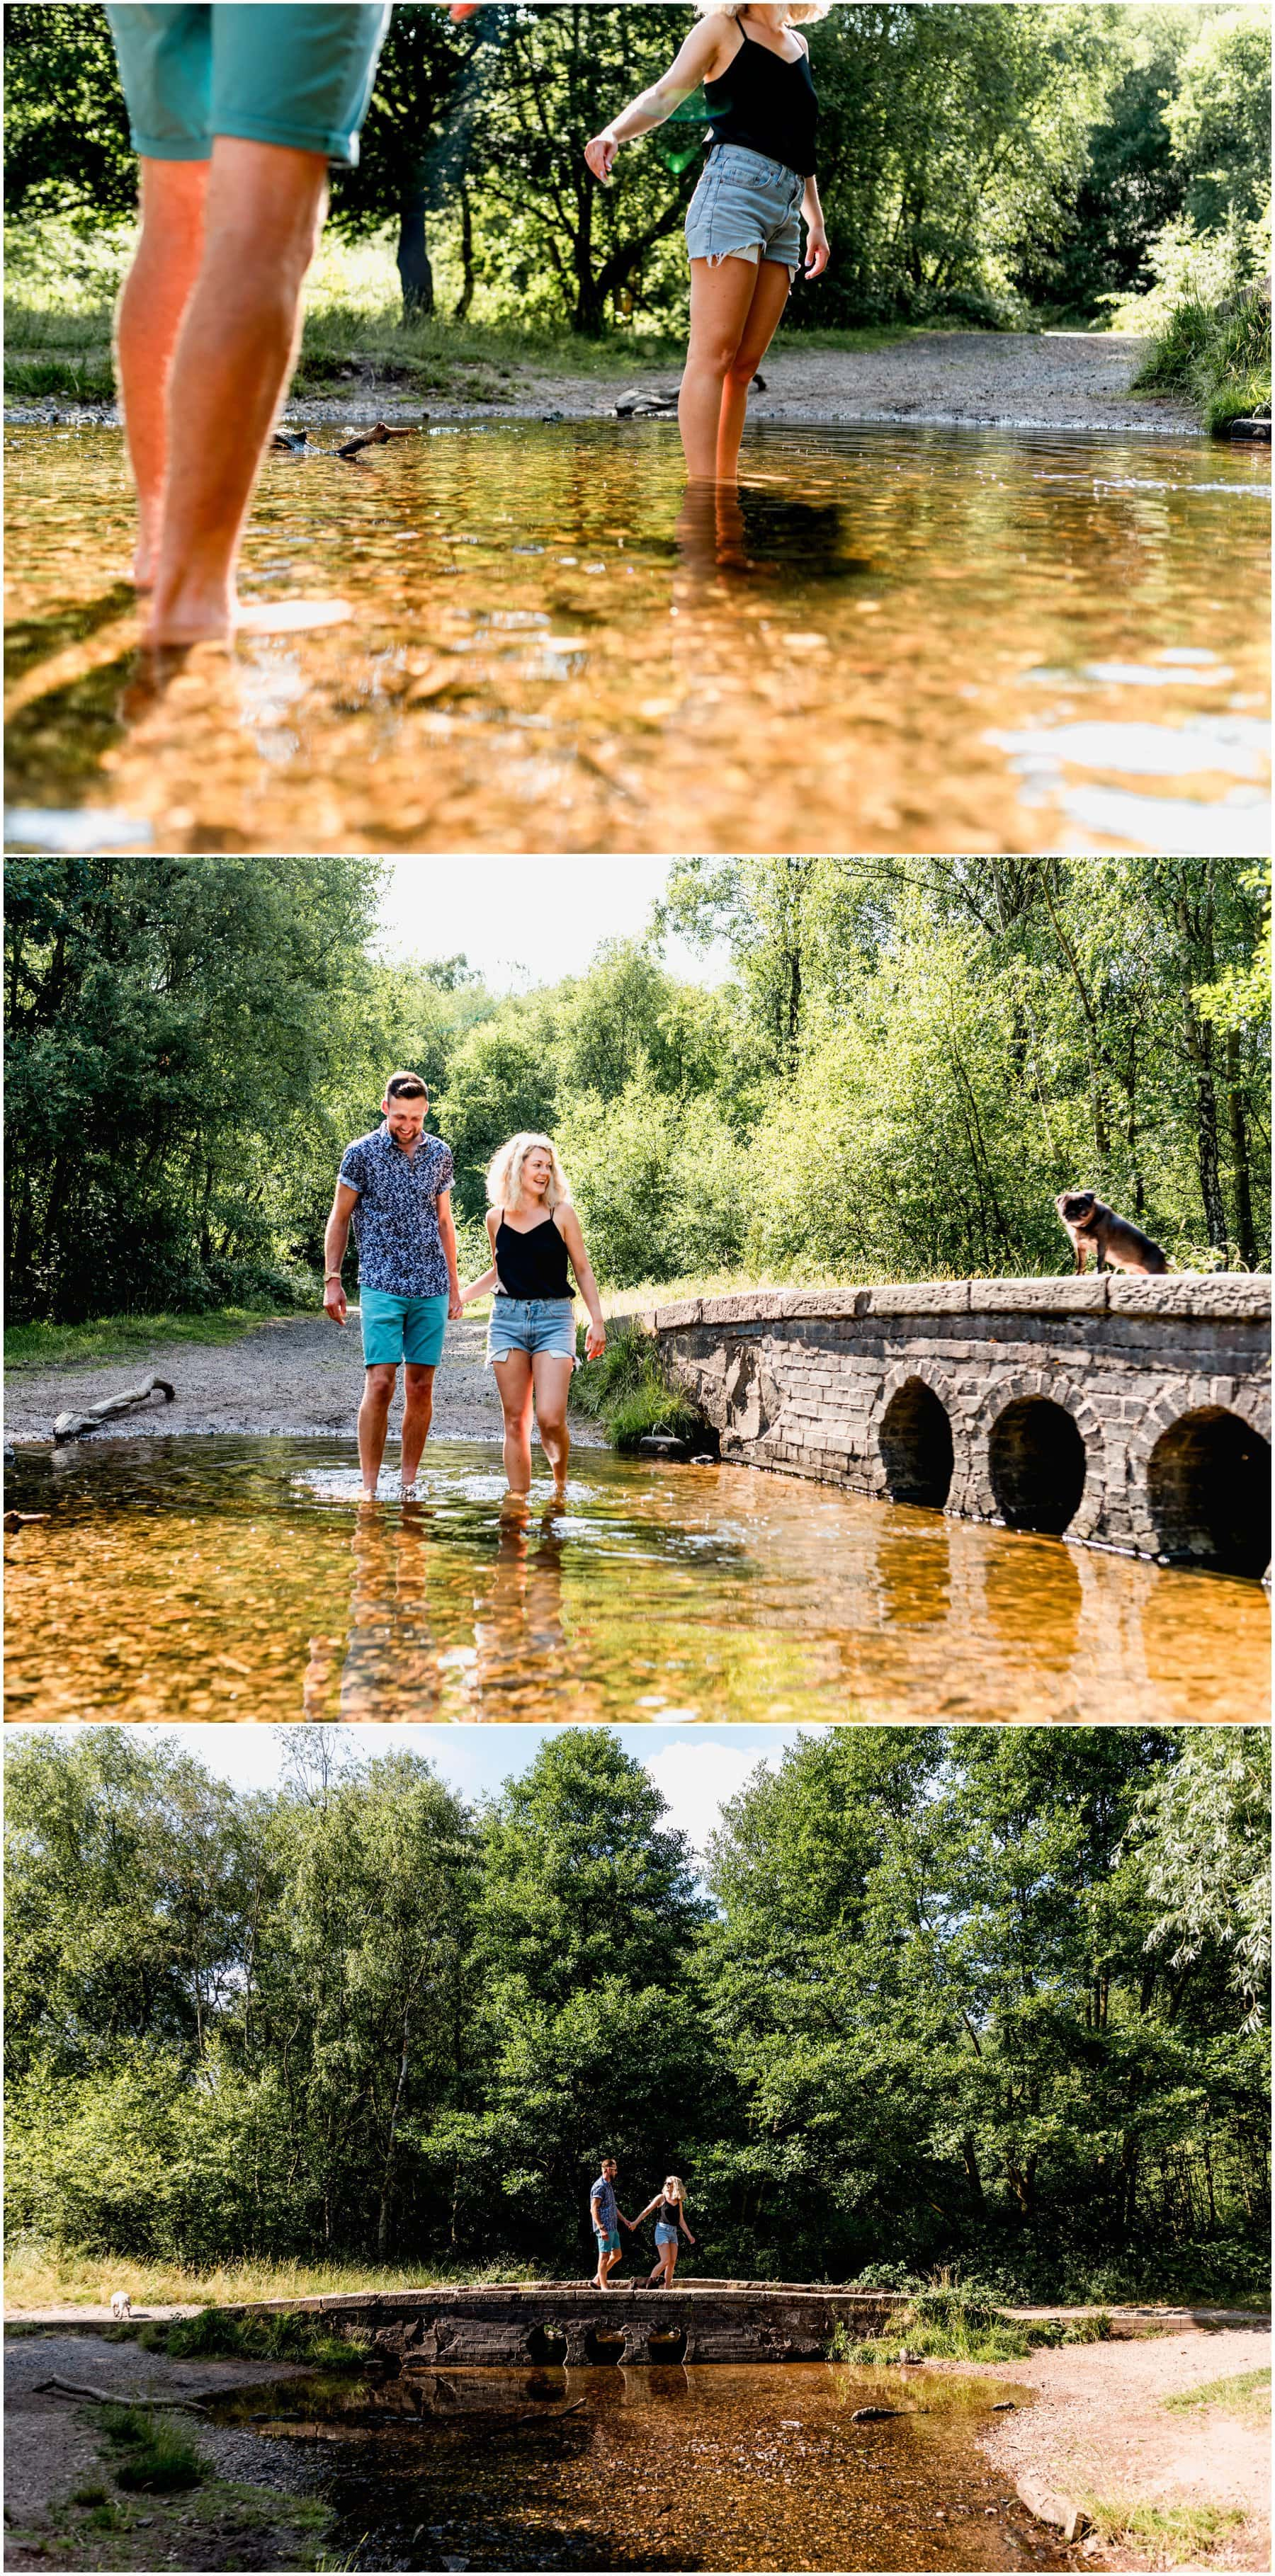 pre wedding shoot with meg and tom paddling in the brook next to a bridge being watched by their pug